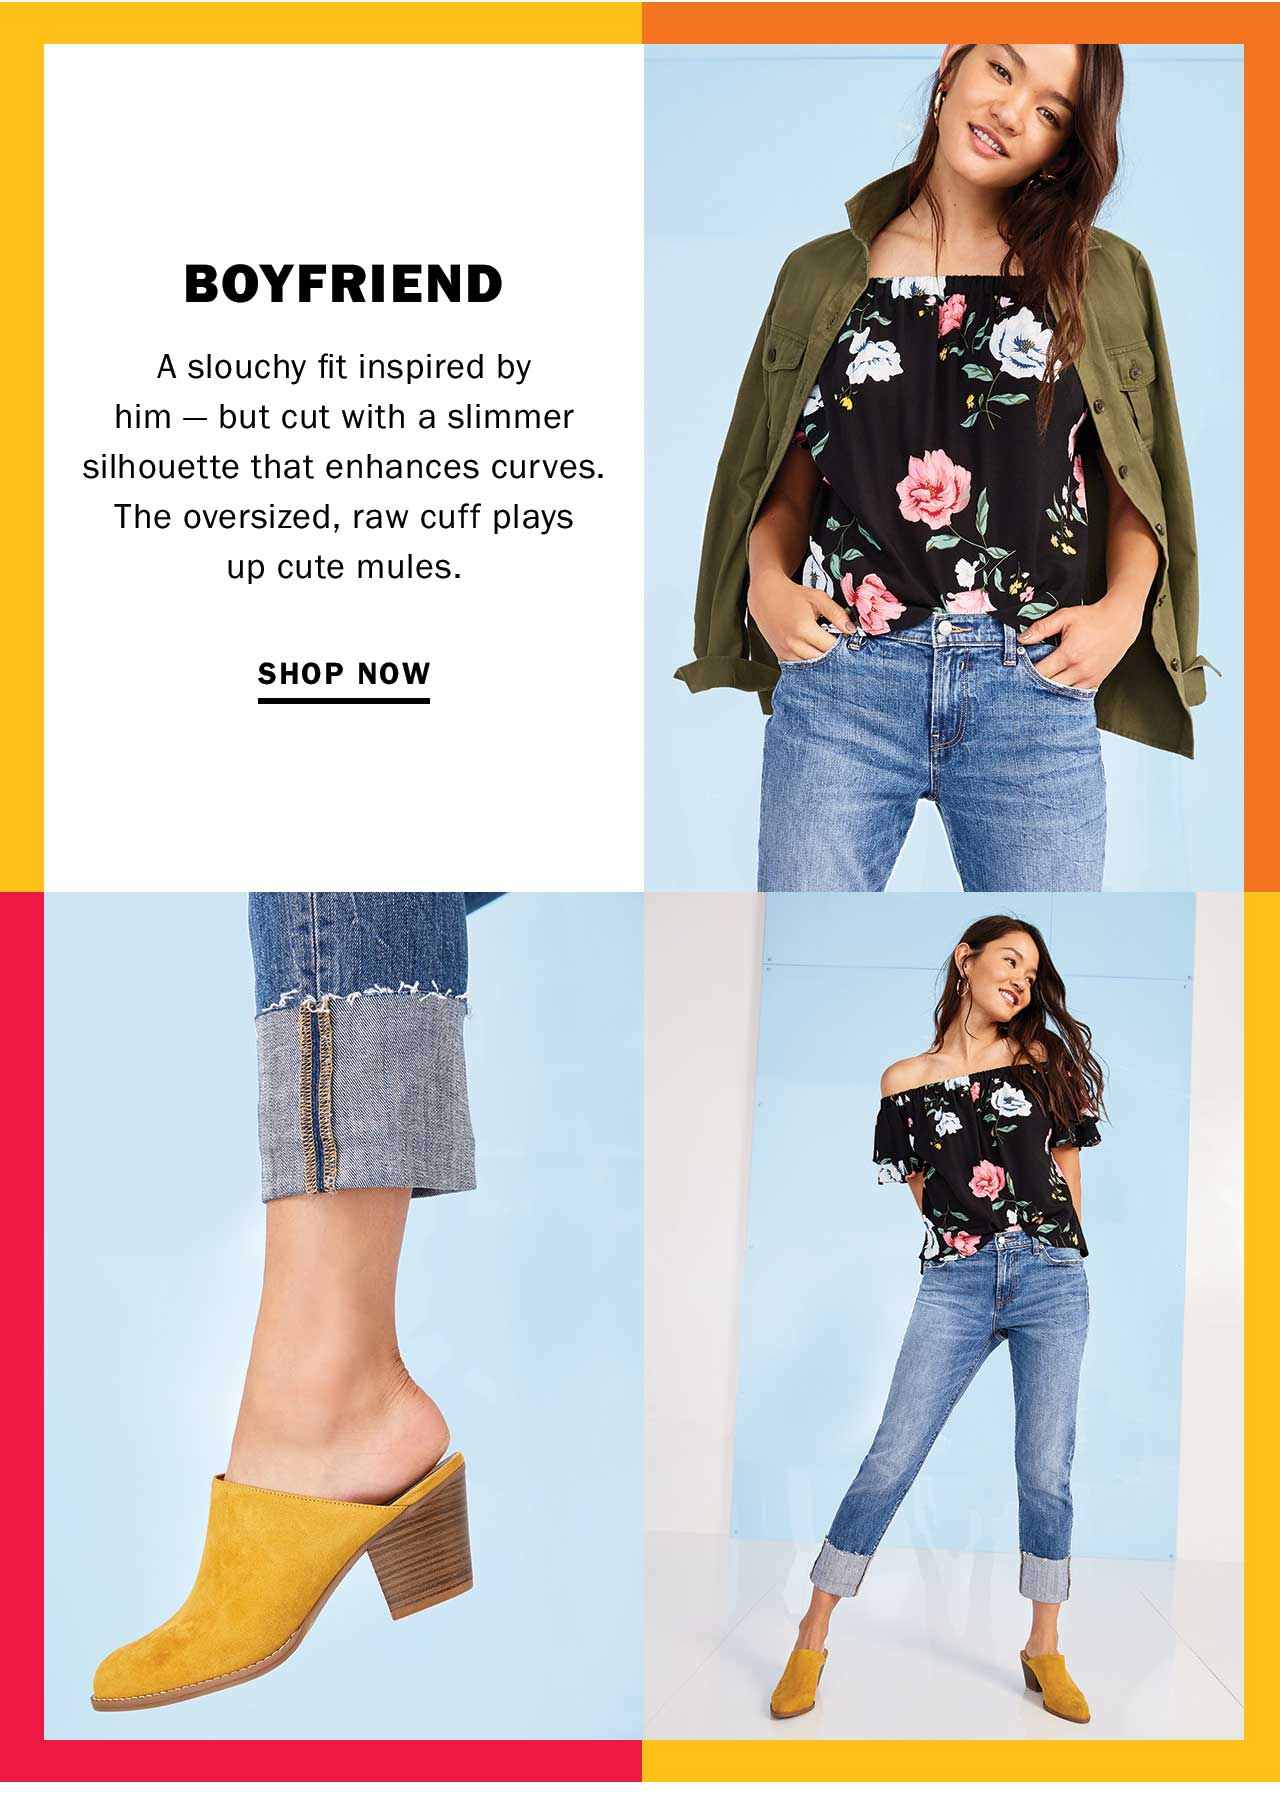 BOYFRIEND | SHOP NOW